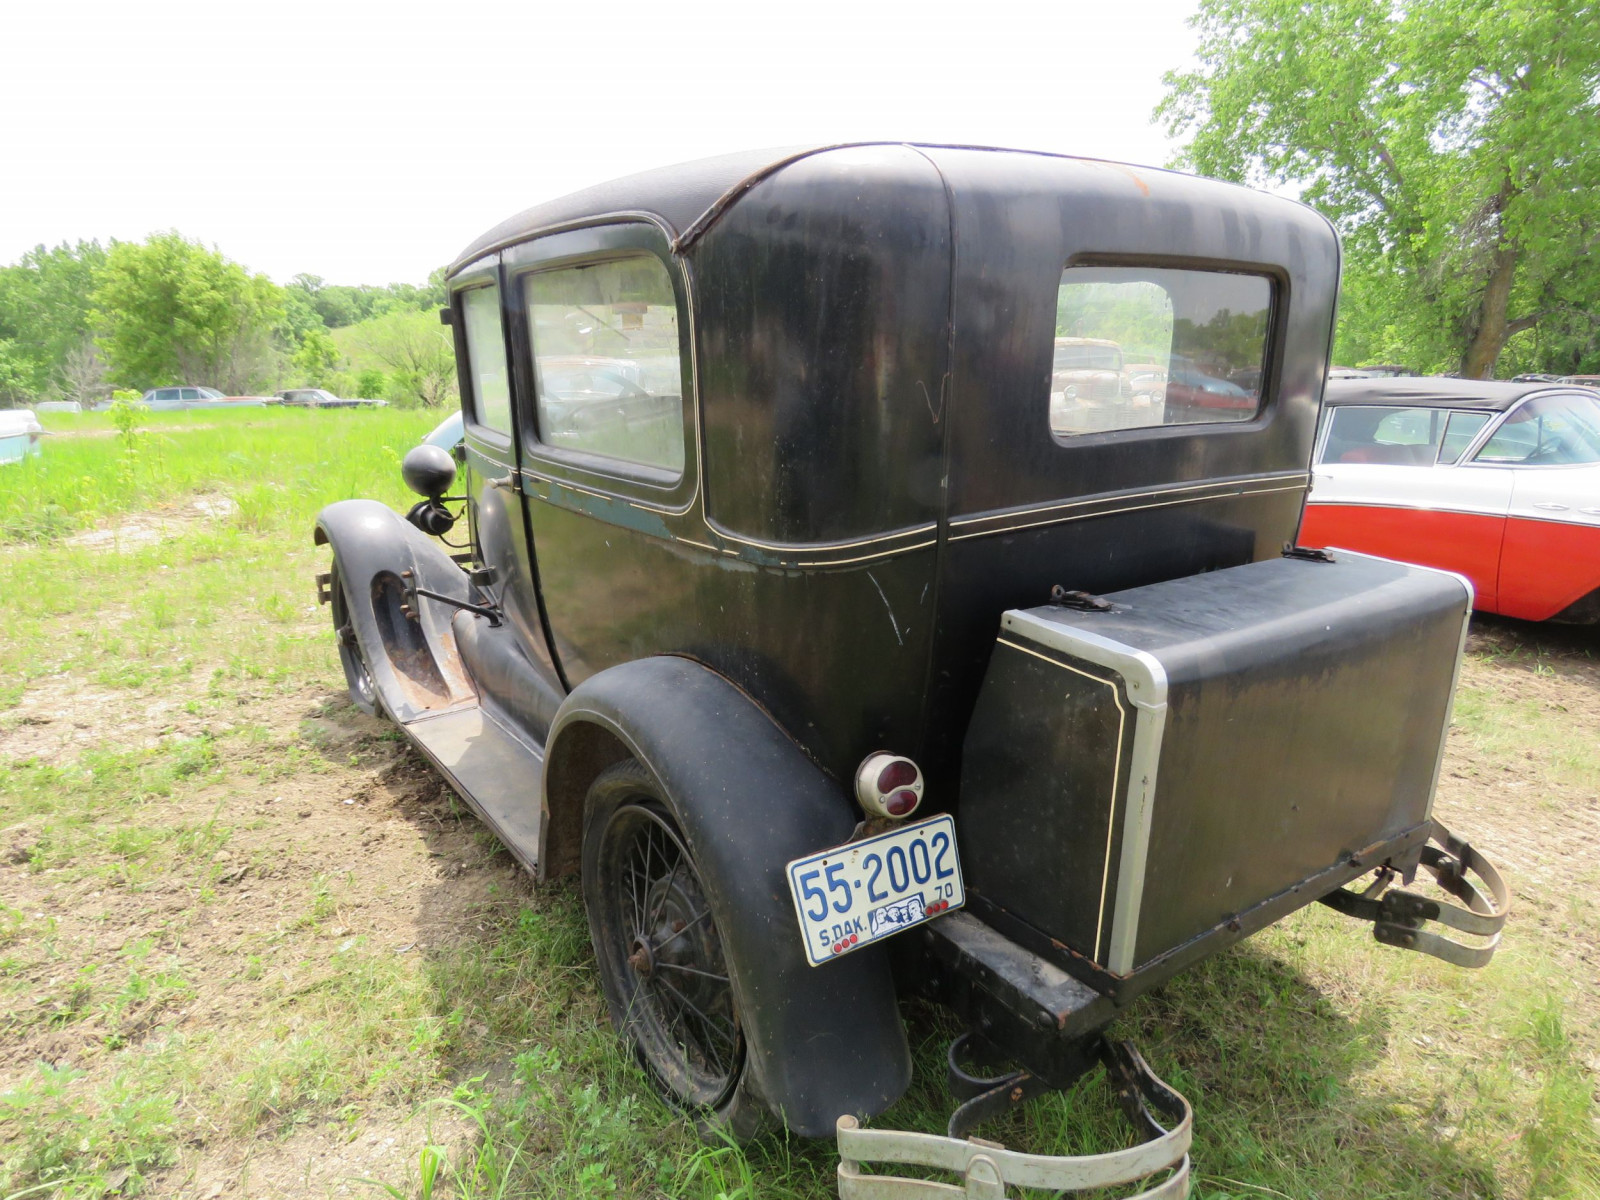 1929 Ford Model A 4dr Sedan - Image 4